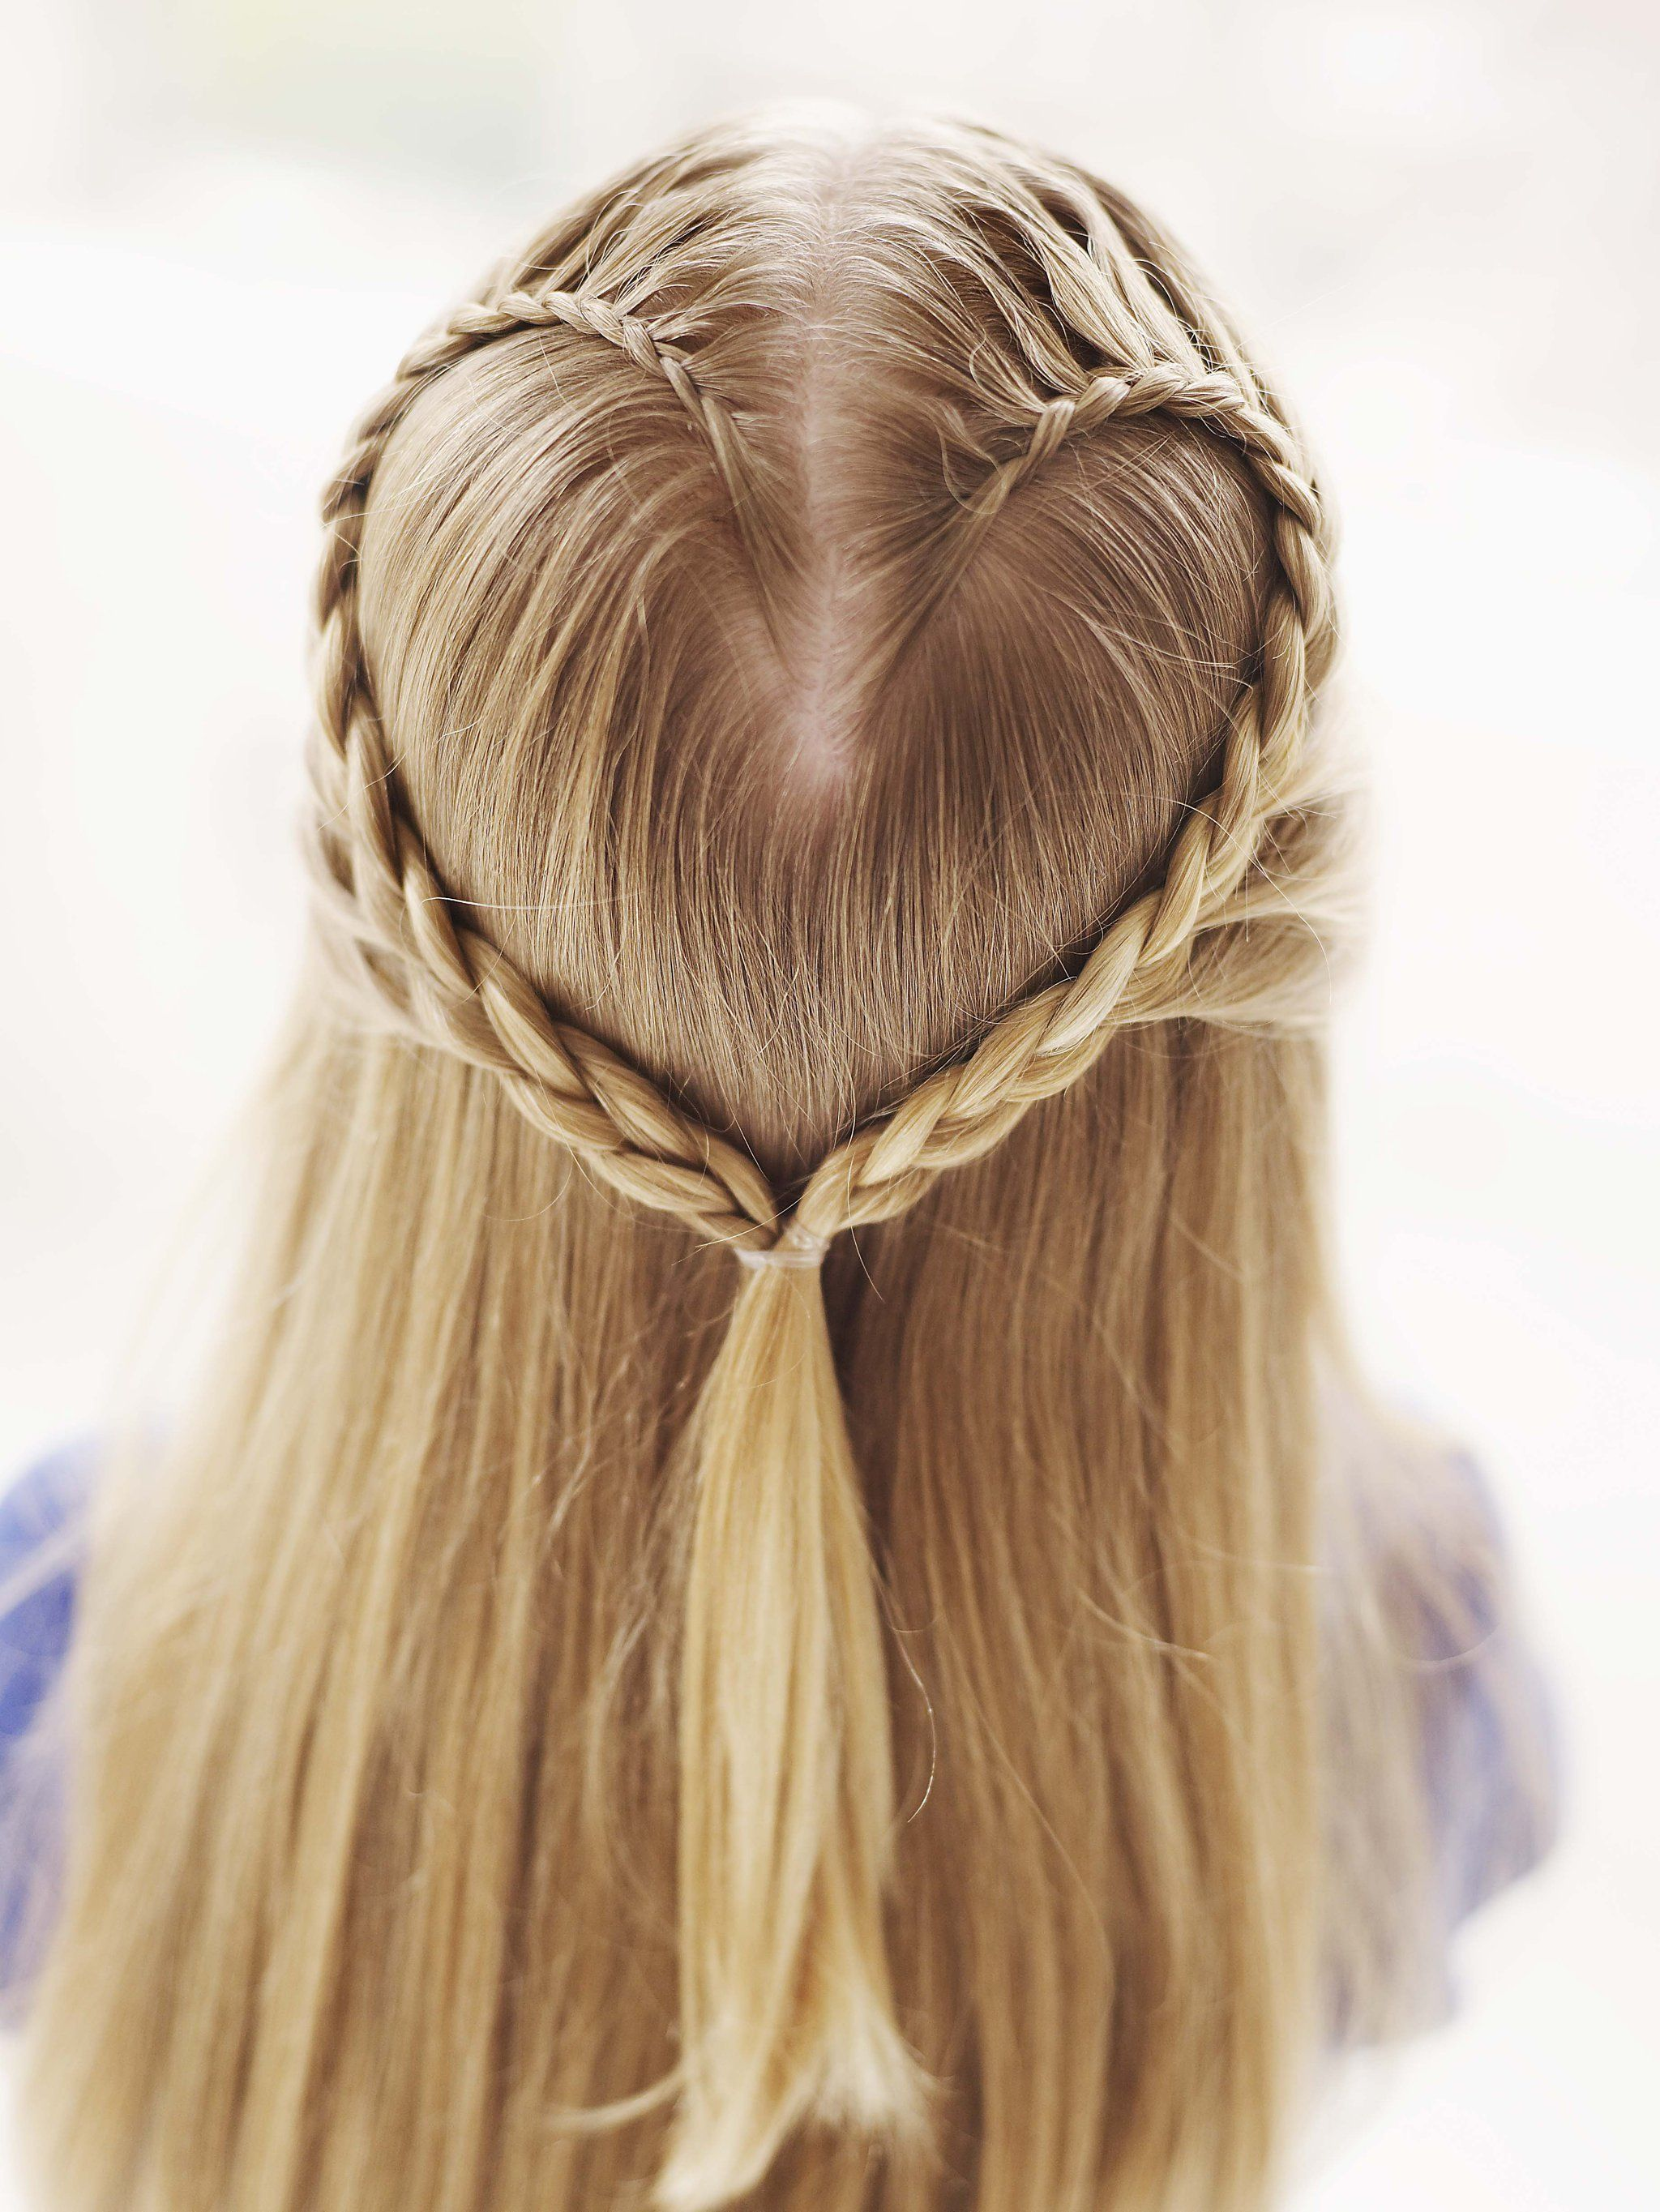 Lace braid heart lace braid hair style and girl hairstyles